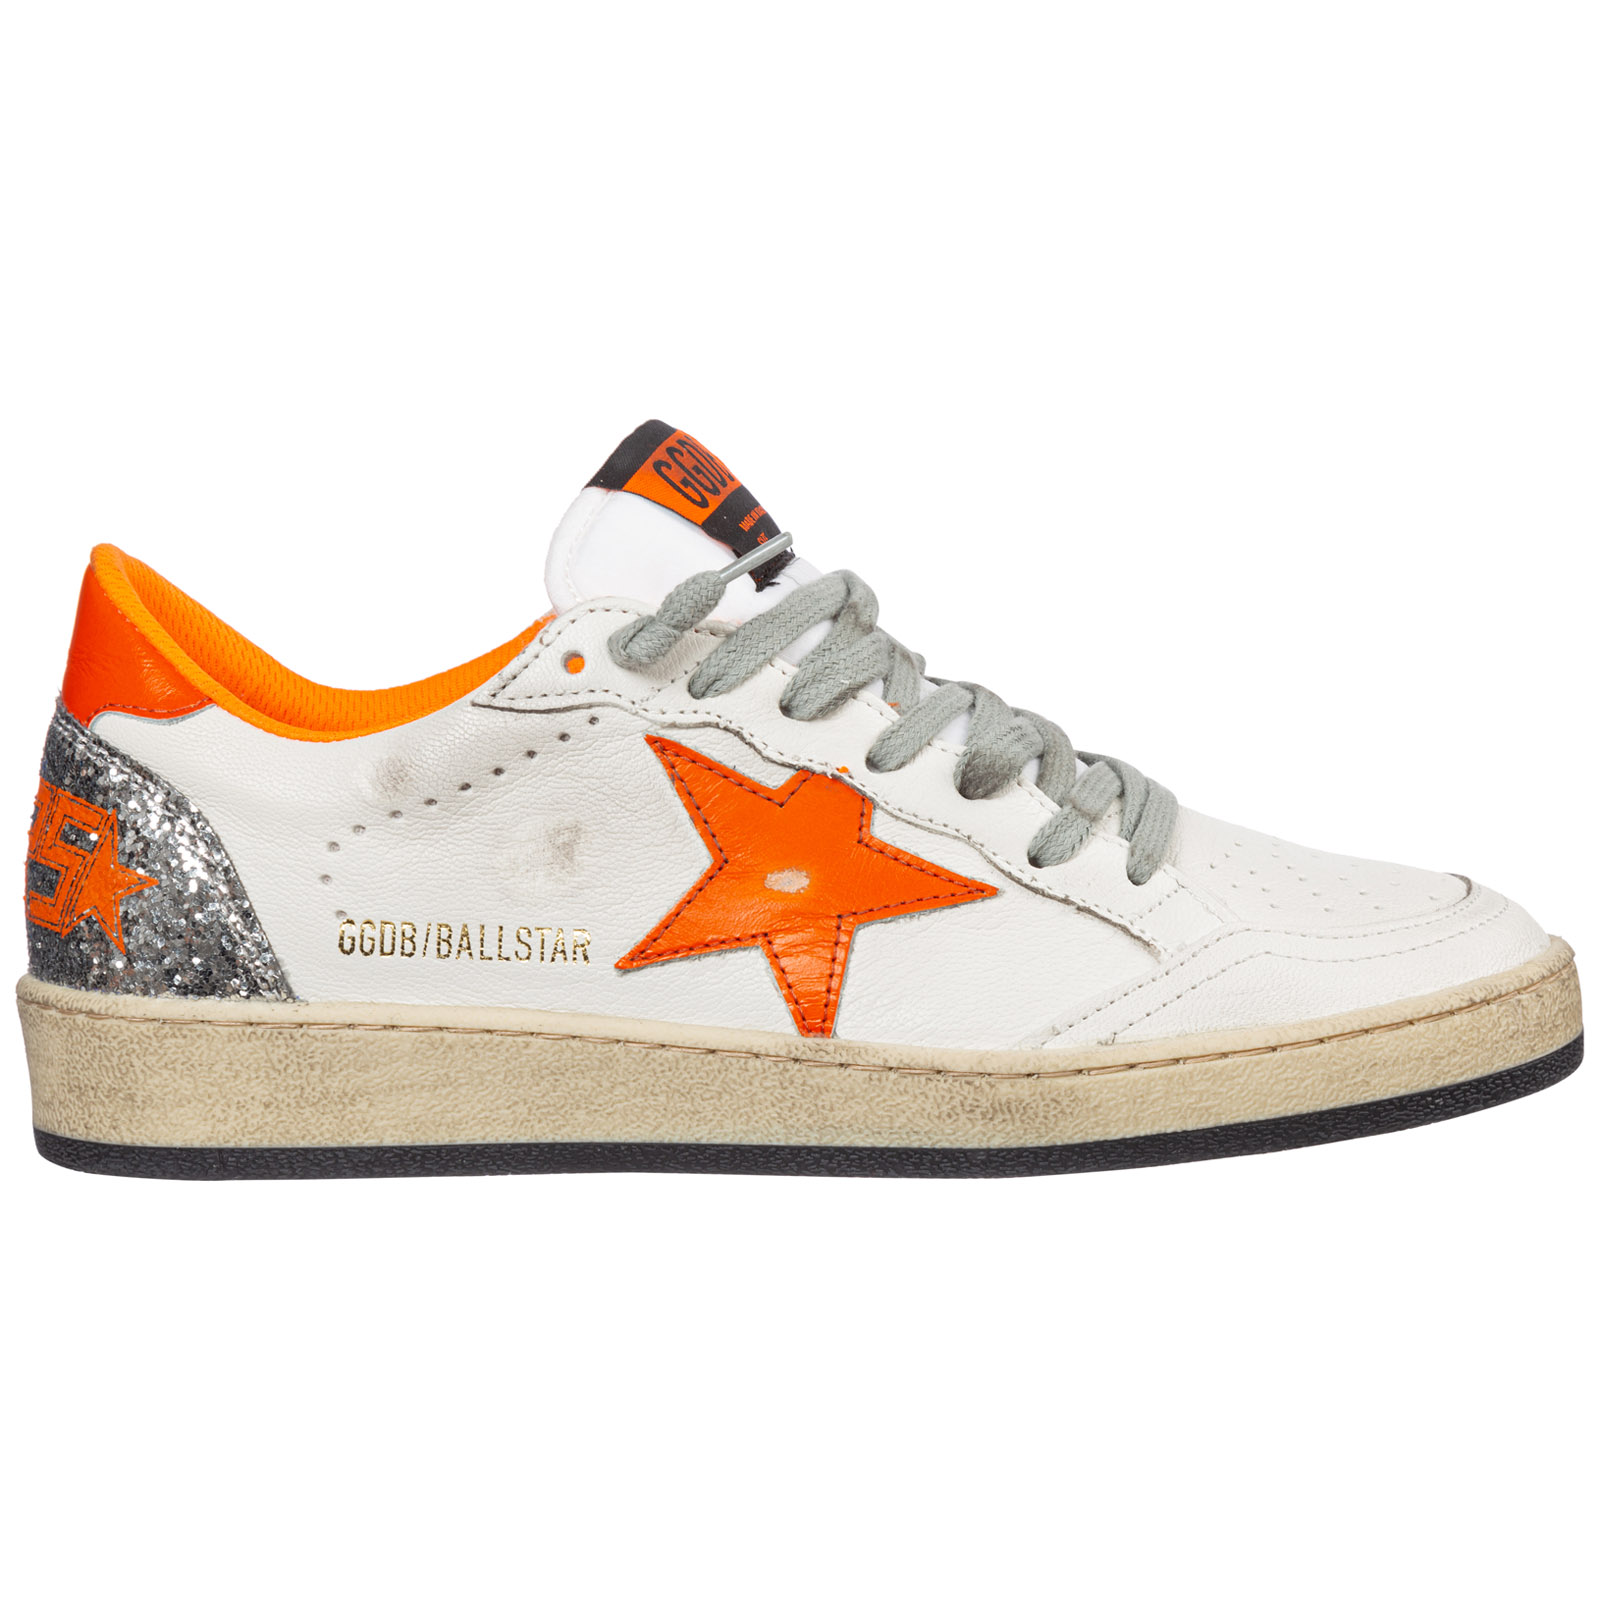 Golden Goose Sneakers WOMEN'S SHOES LEATHER TRAINERS SNEAKERS BALL STAR